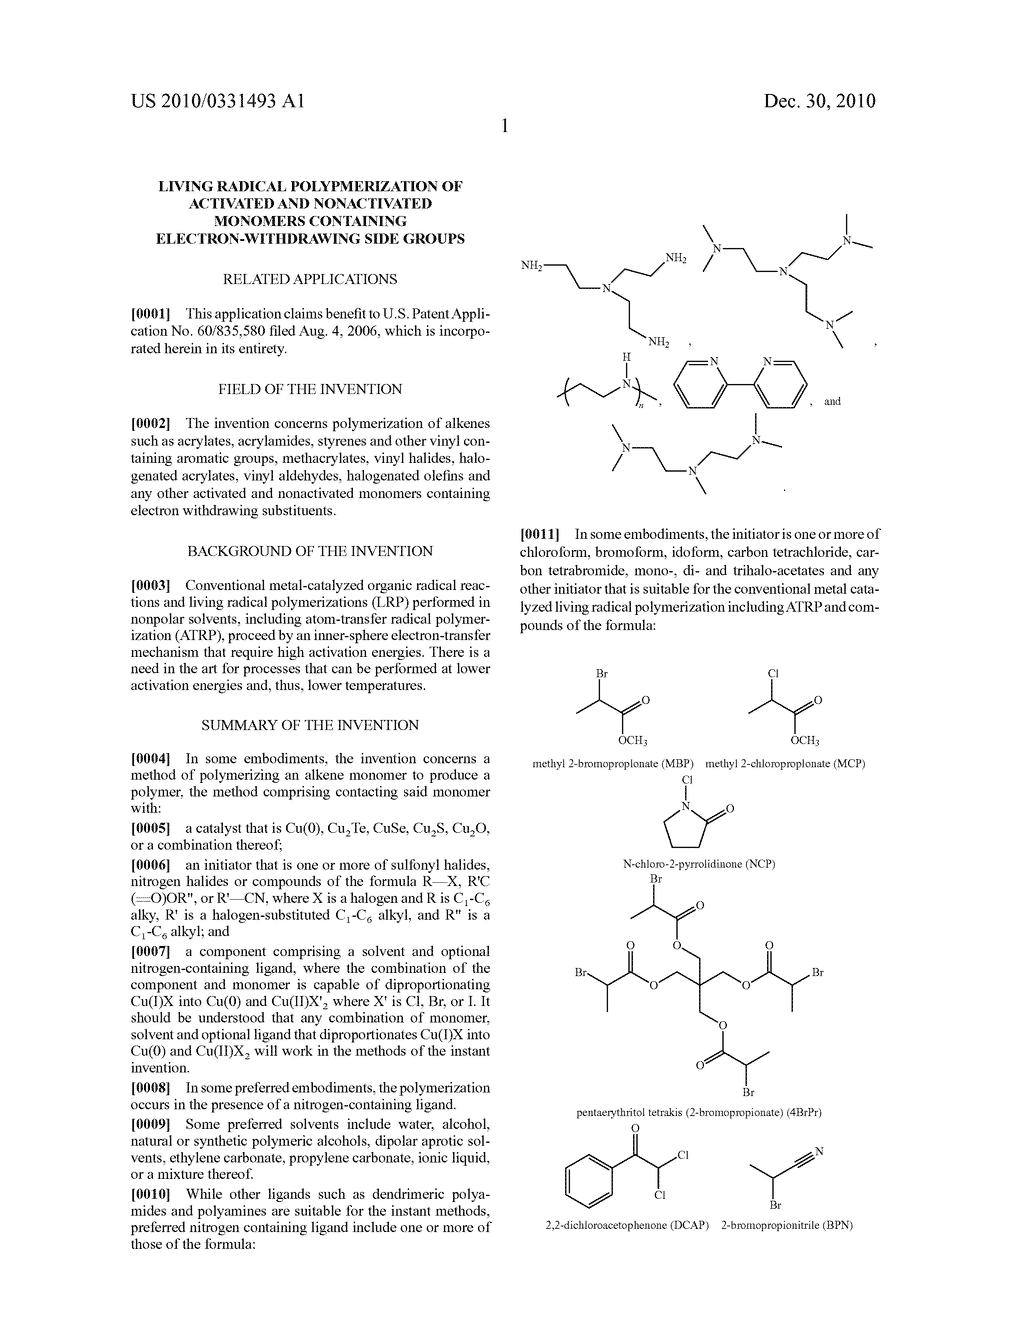 LIVING RADICAL POLYPMERIZATION OF ACTIVATED AND NONACTIVATED MONOMERS CONTAINING ELECTRON-WITHDRAWING SIDE GROUPS - diagram, schematic, and image 11